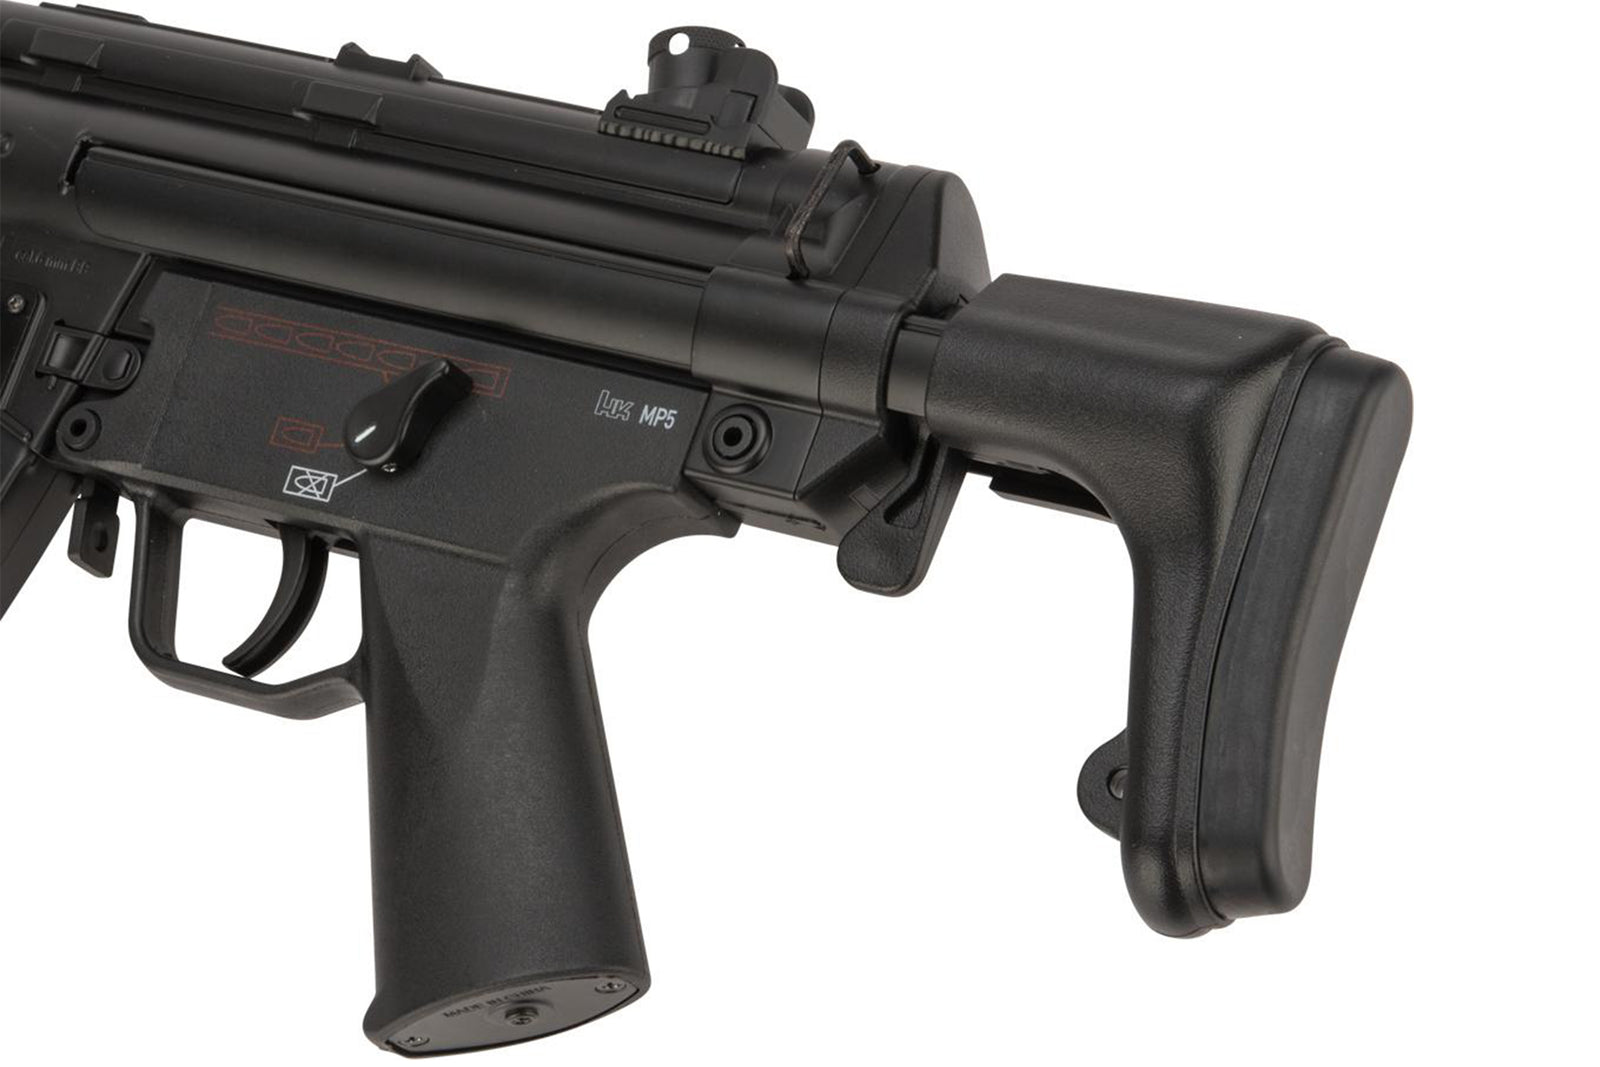 Elite Force H&K Competition Kit MP5 A4/A5 SMG AEG Airsoft Gun by Umarex